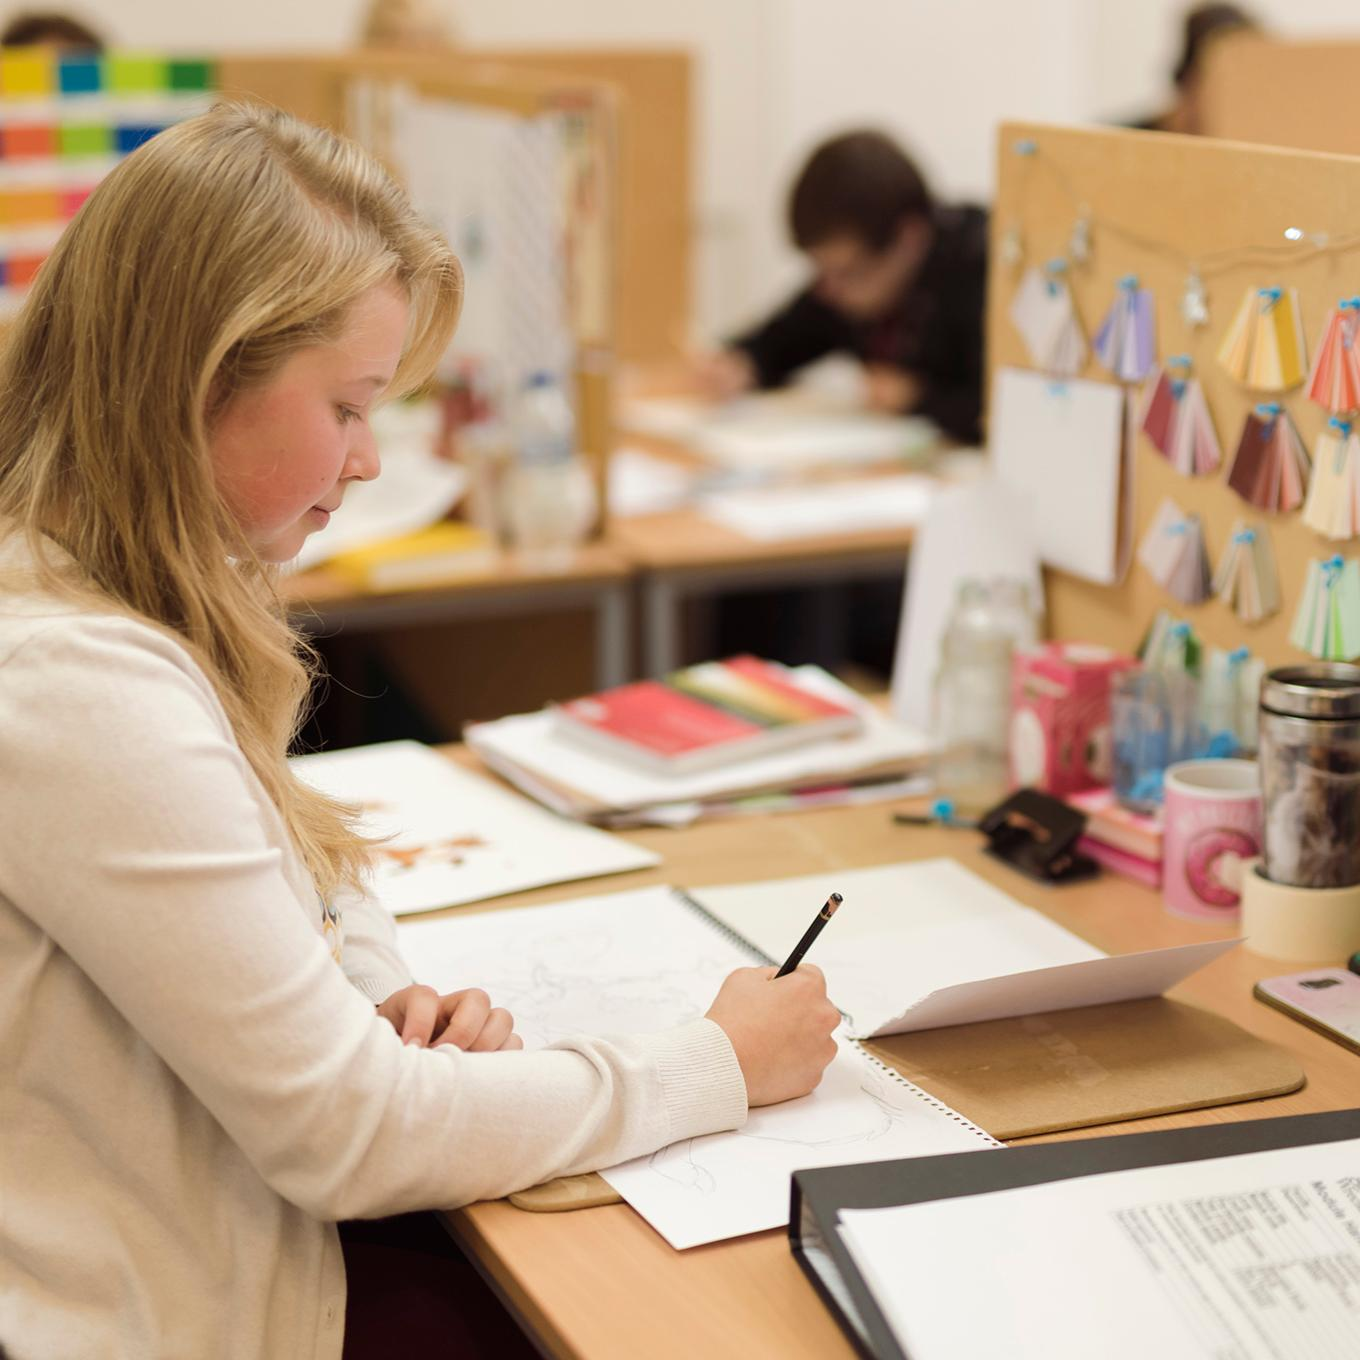 An illustration student works on a project at her workspace